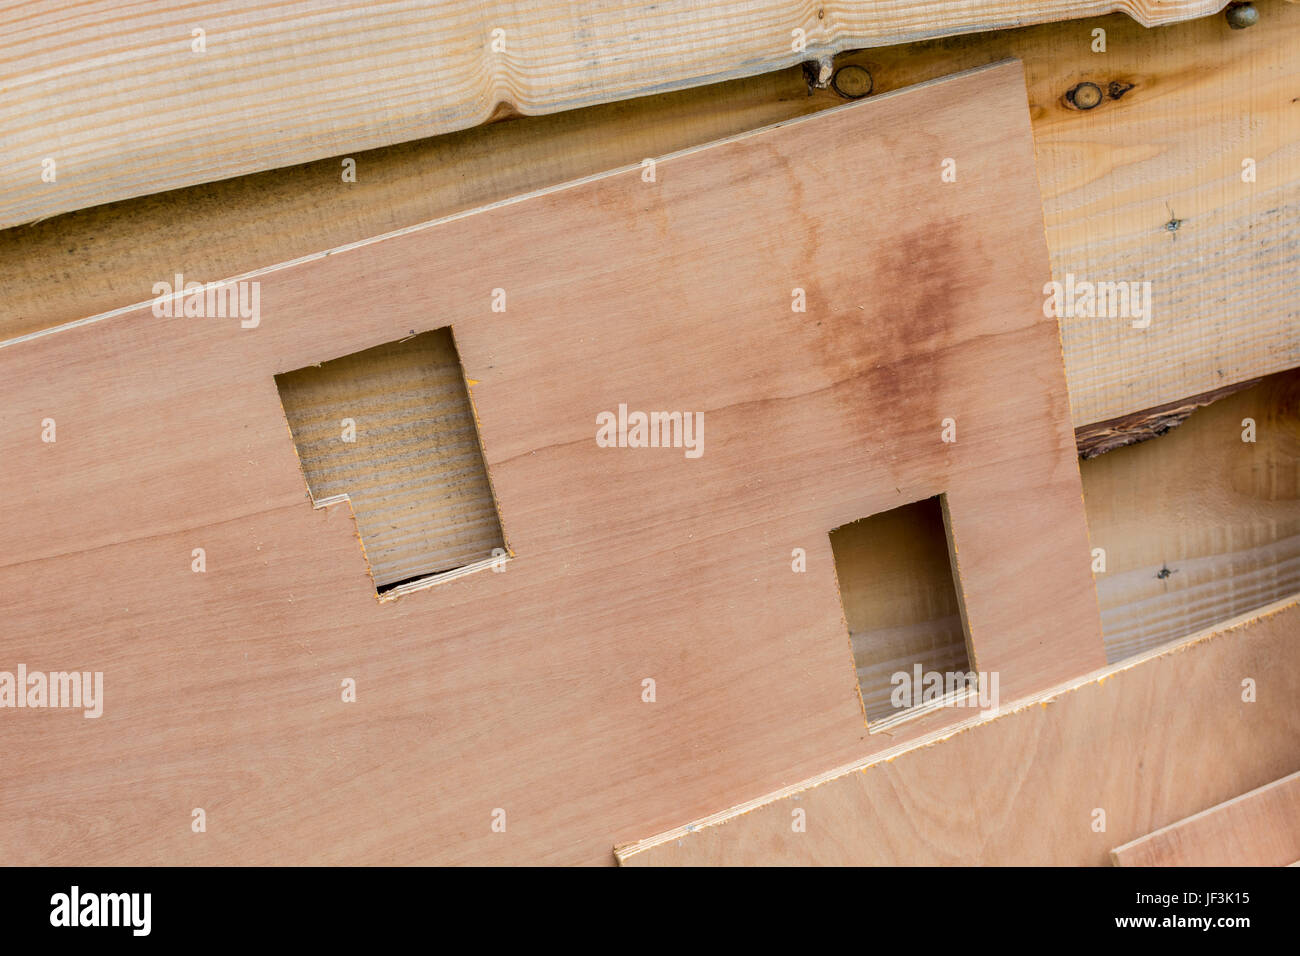 Section of plywood with square holes cut out - possible metaphor for DIY and home improvement. - Stock Image